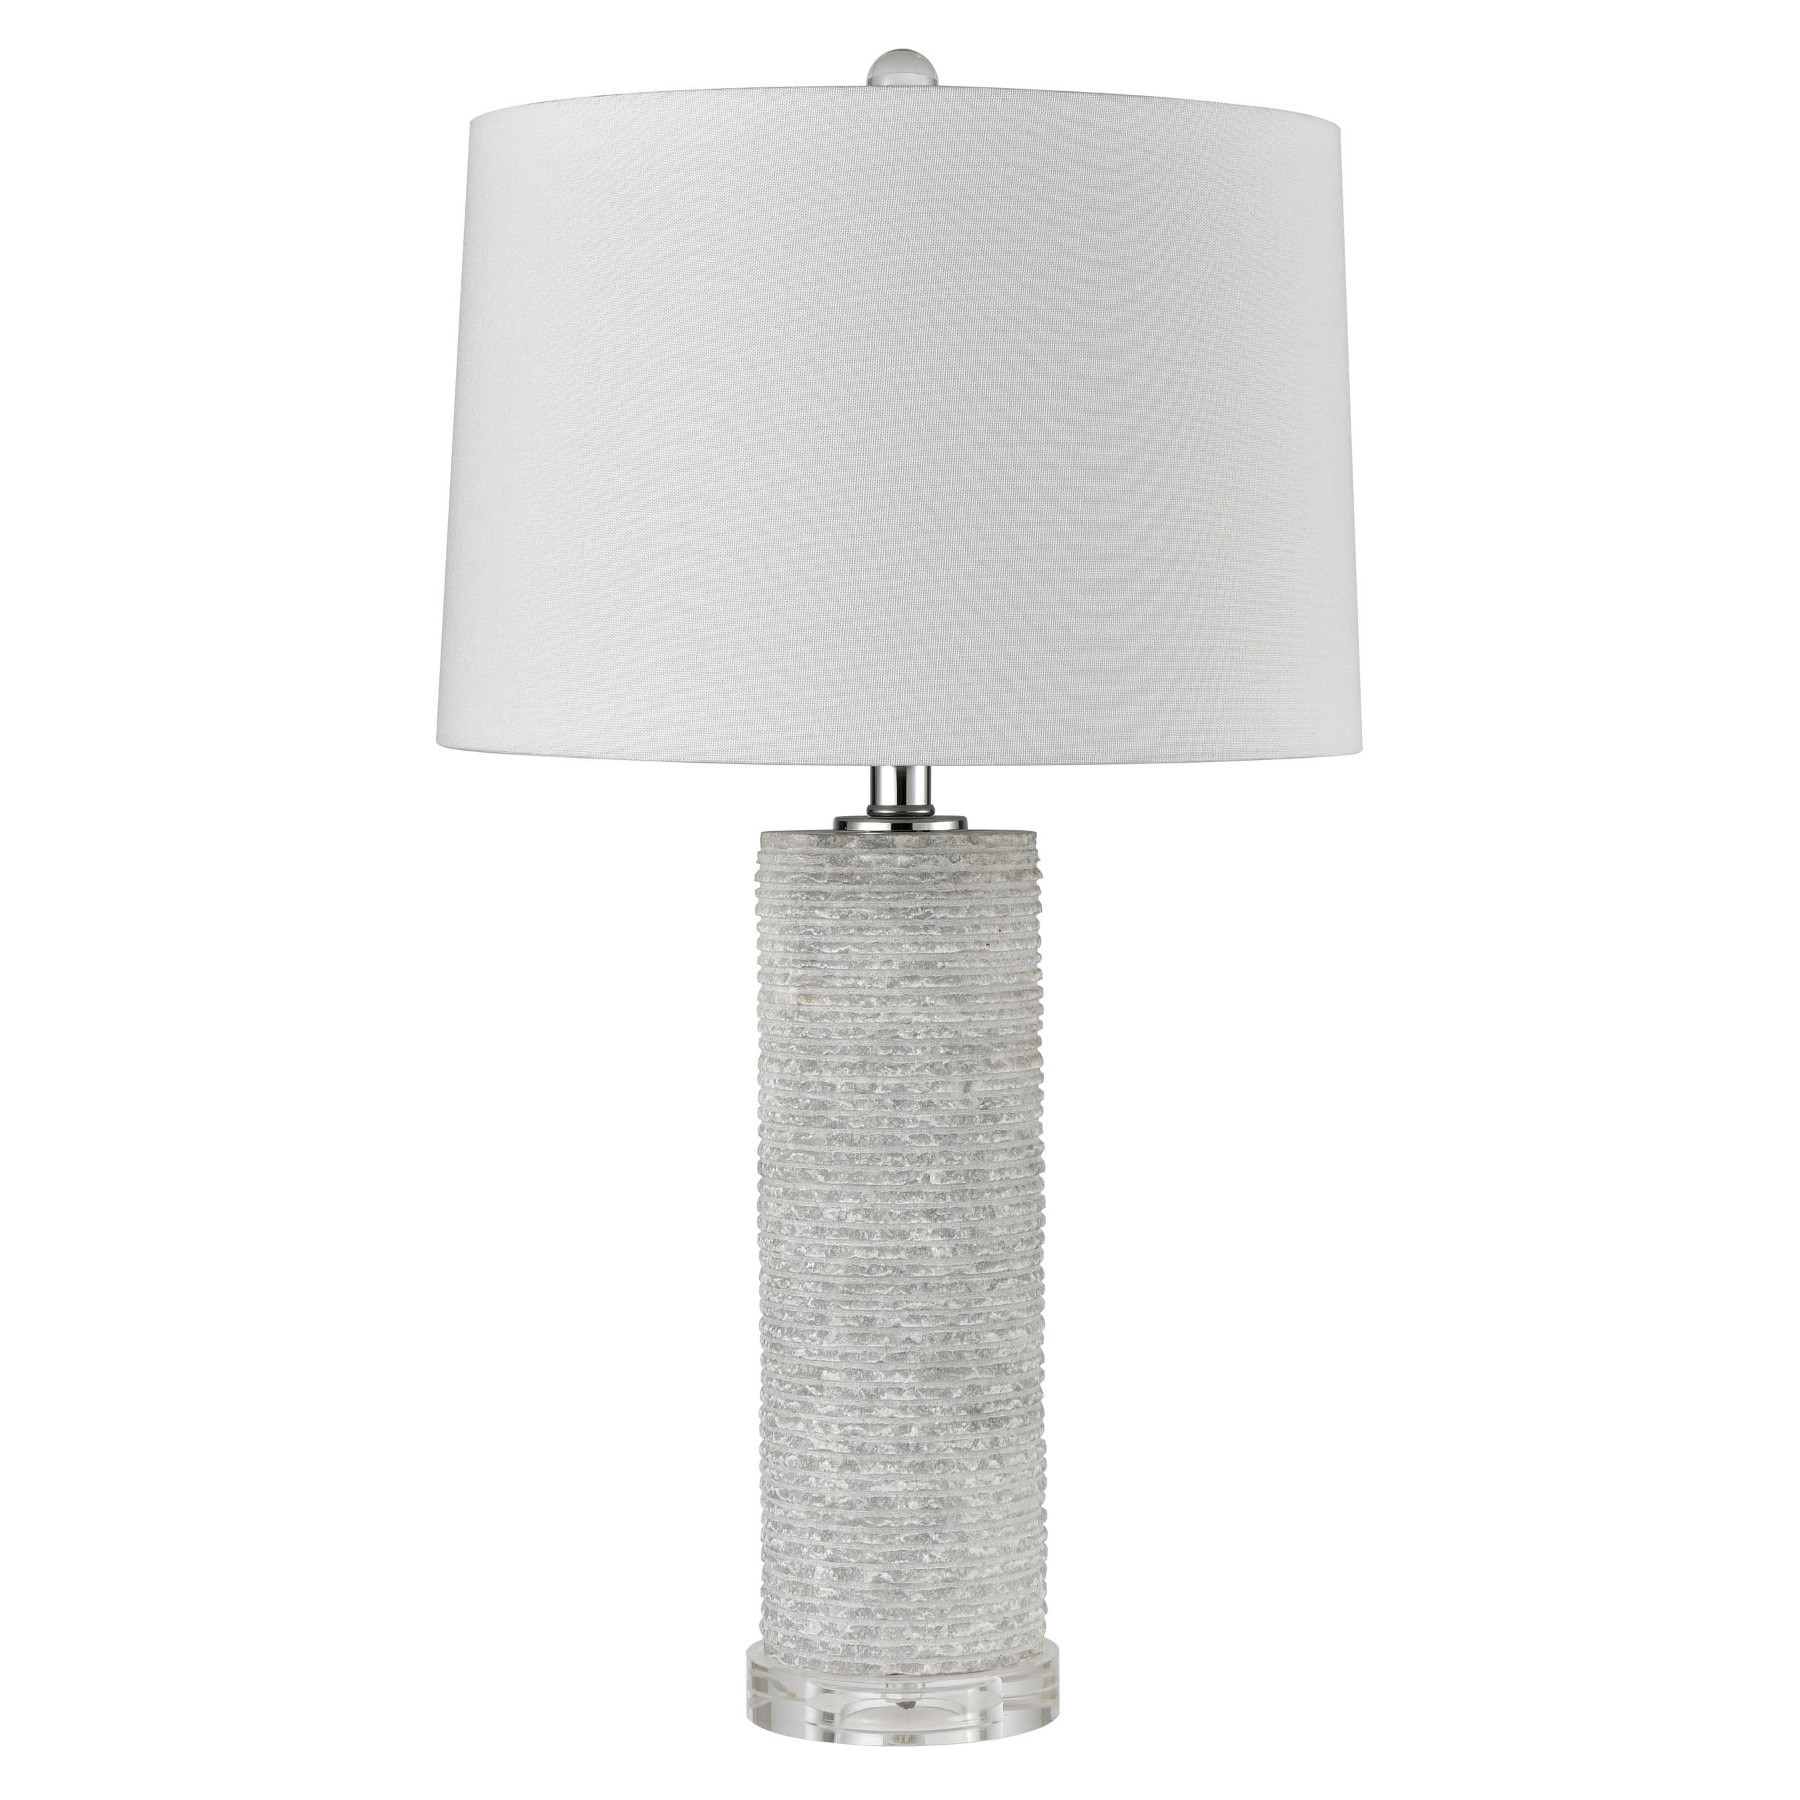 Bree Raw Marble Base Table Lamp